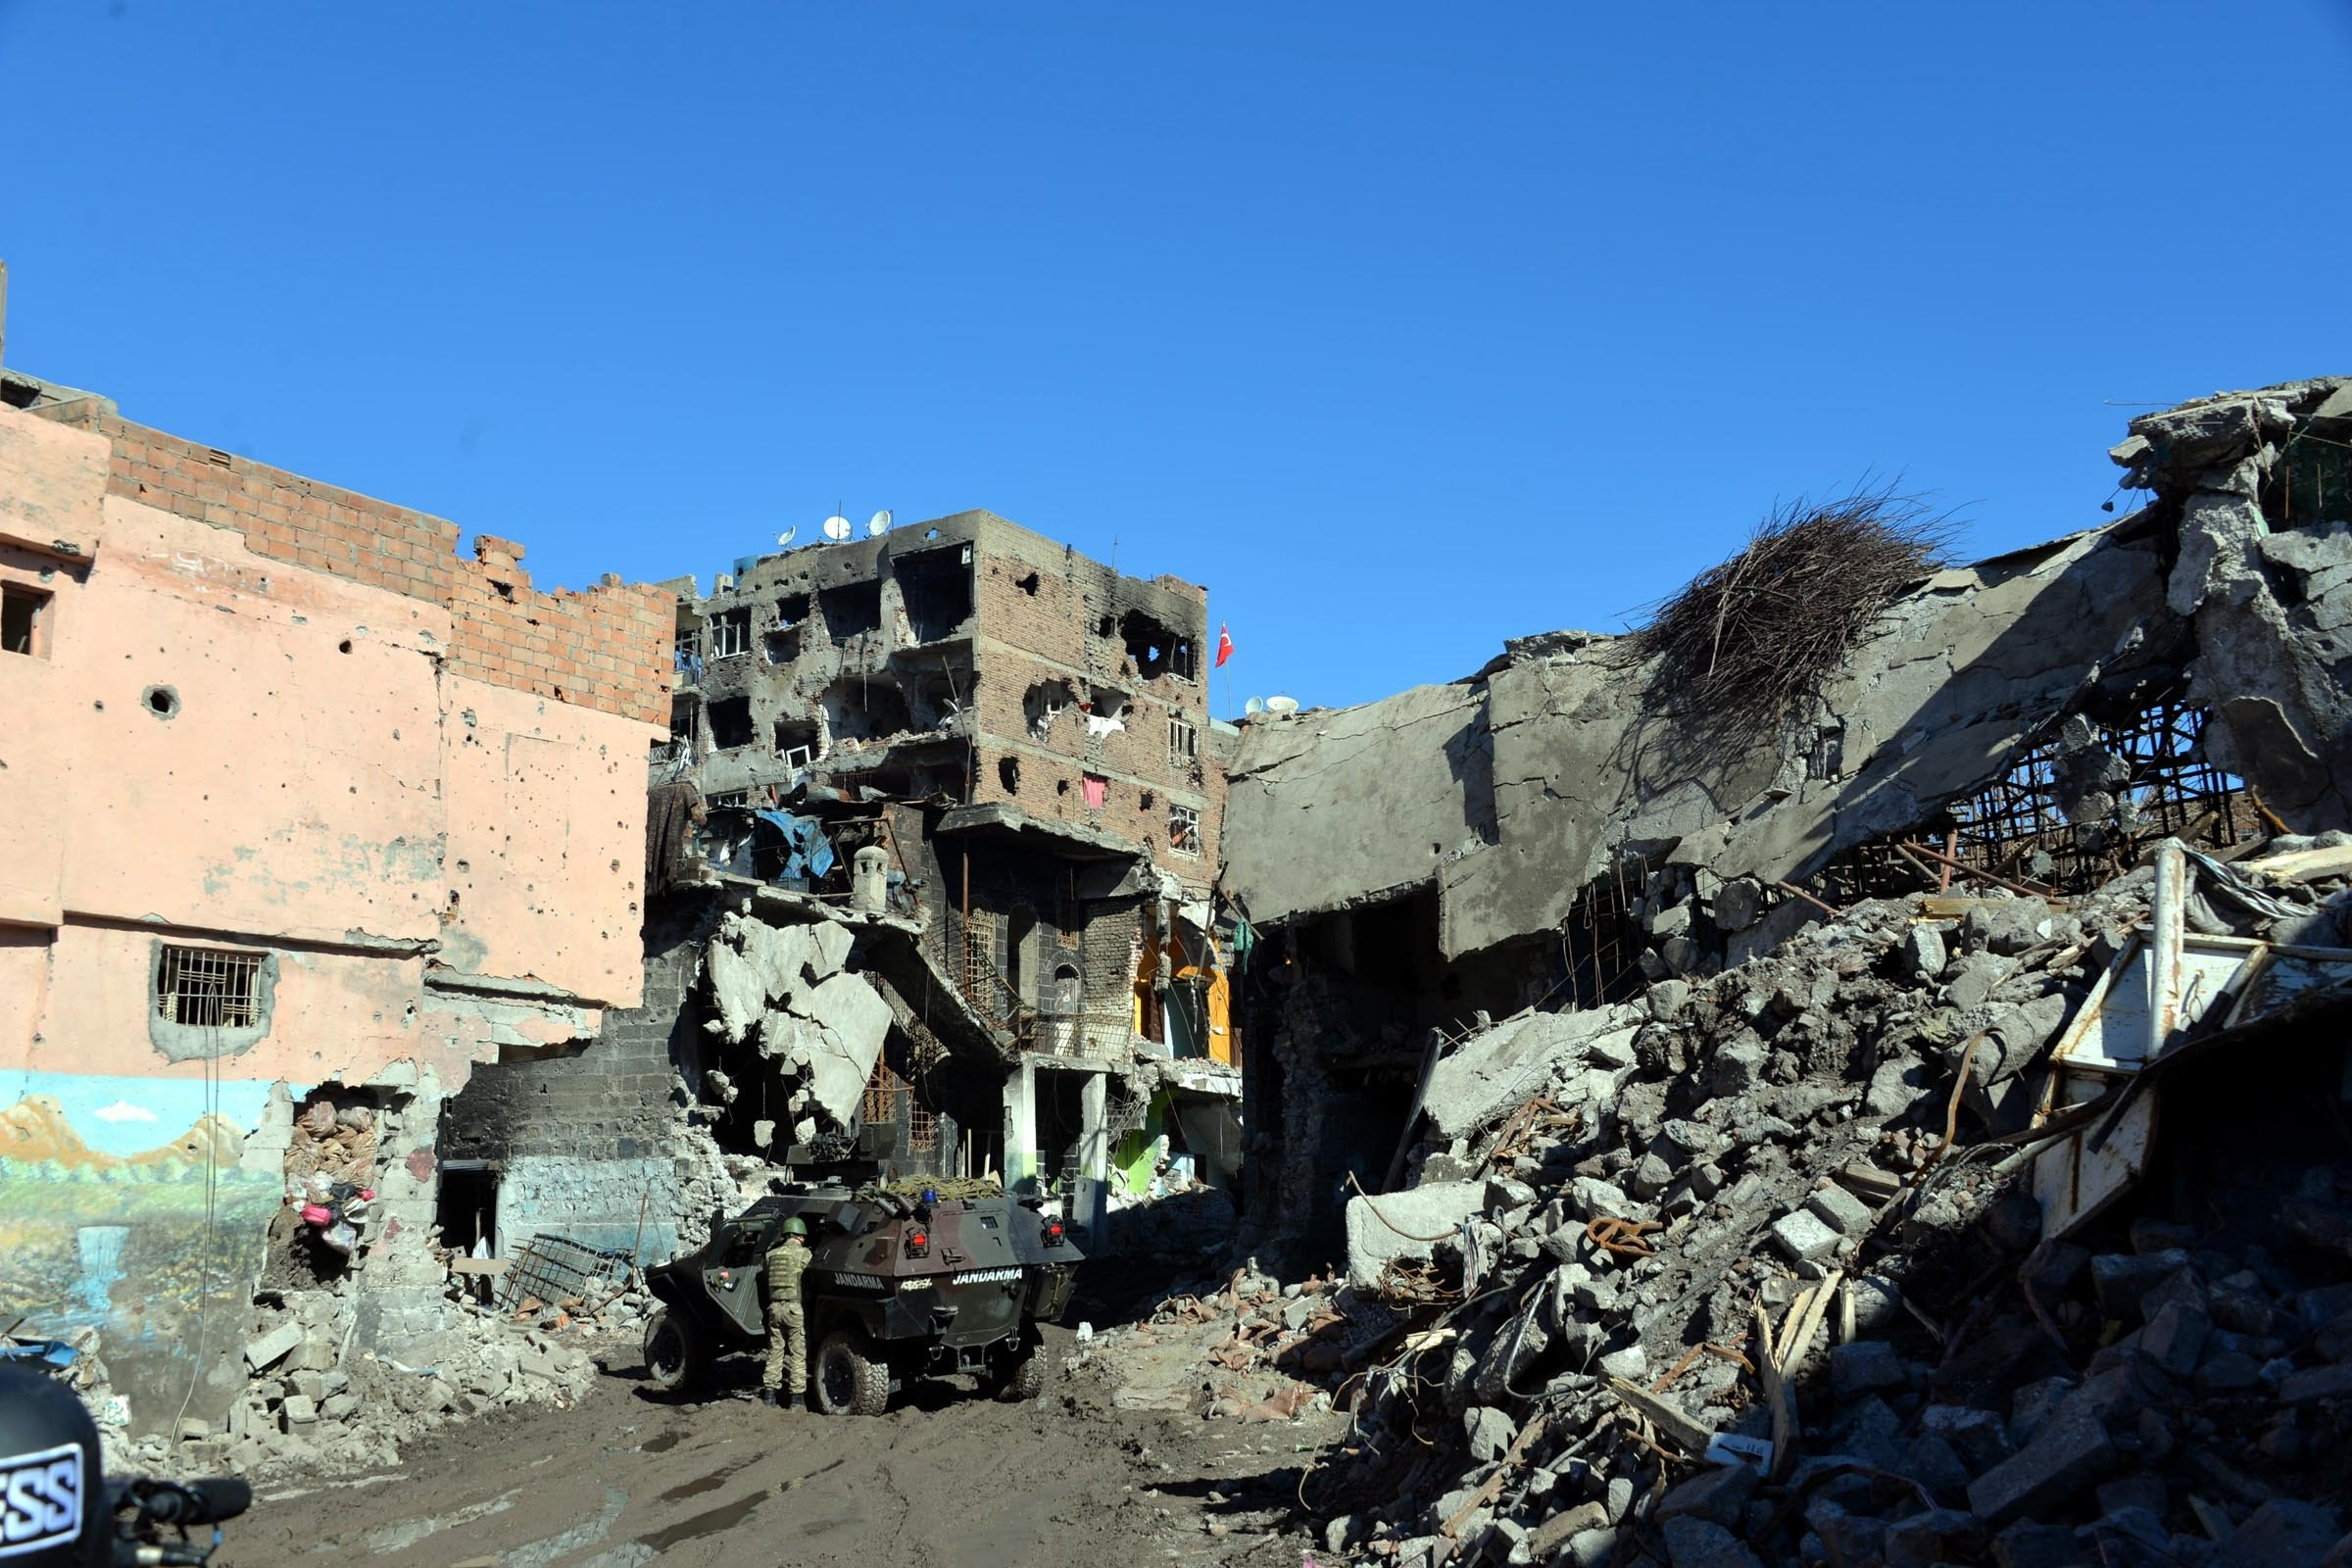 A scene from Diyarbakır's Sur district showing the damage caused by PKK terrorism, Turkey, March 18, 2021. (DHA)